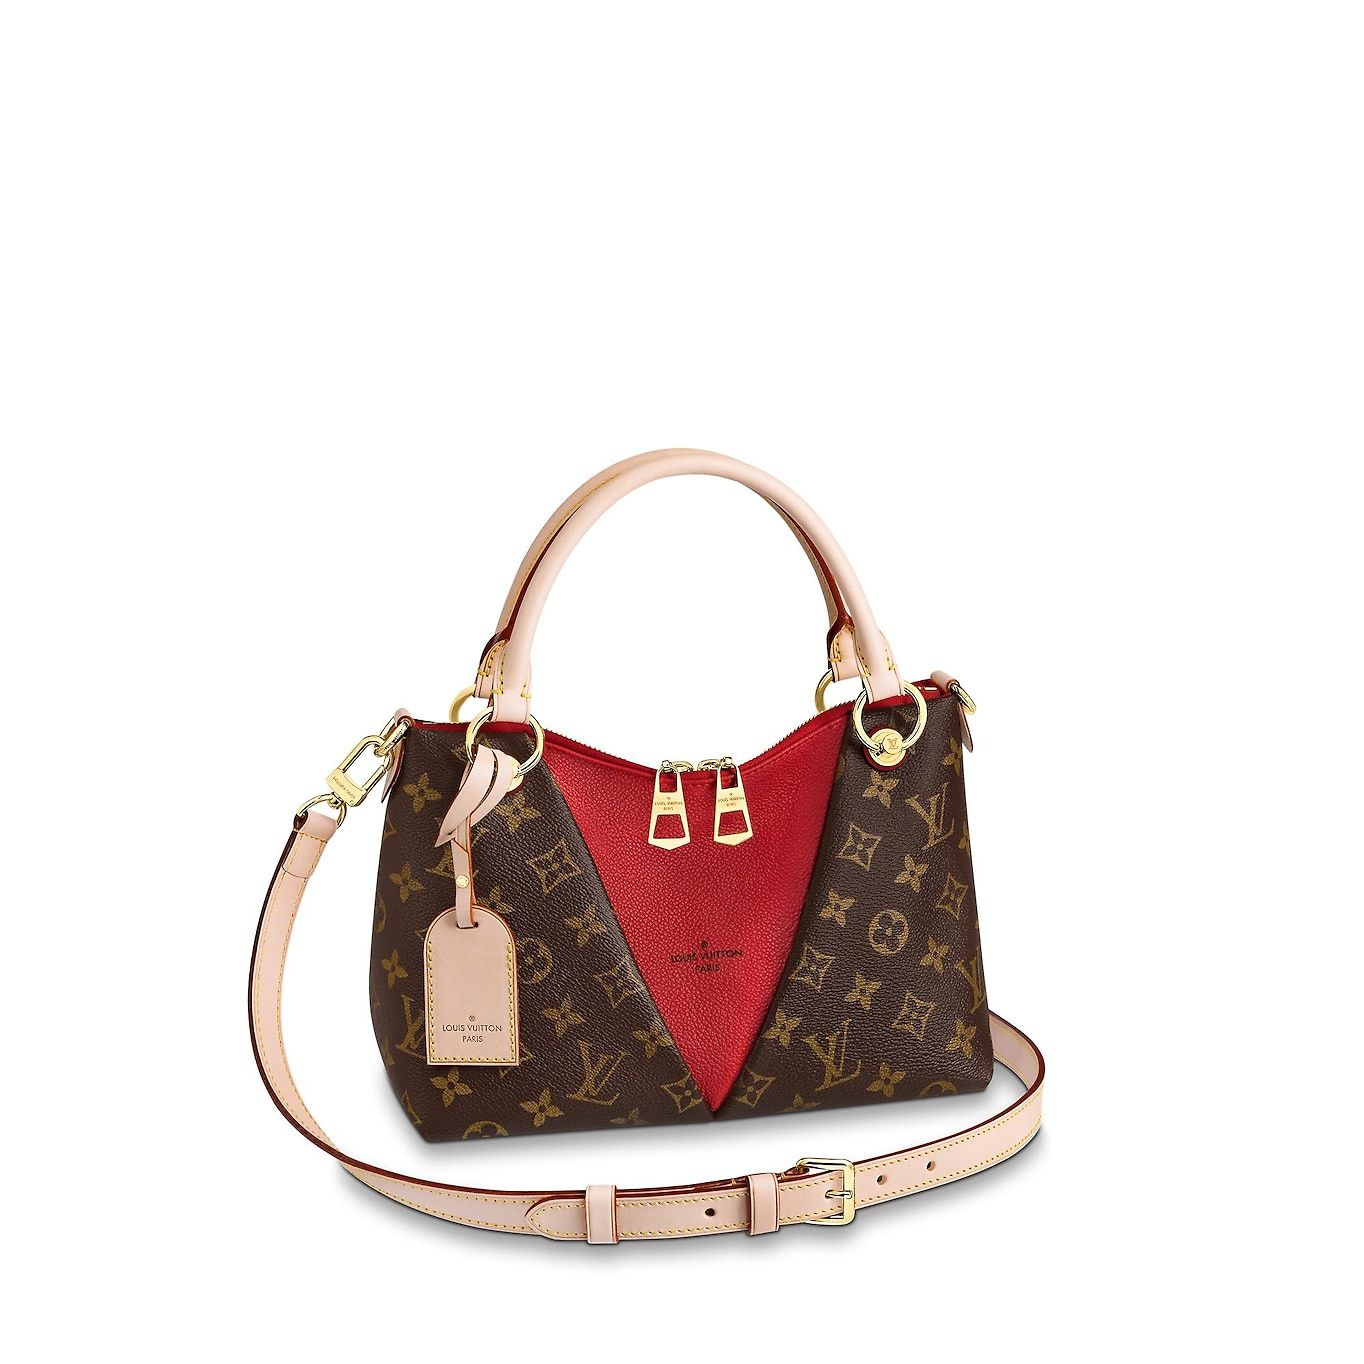 View 1 - V Tote BB Monogram Canvas in Women s Handbags Top Handles collections  by Louis Vuitton 08eda895f62a7